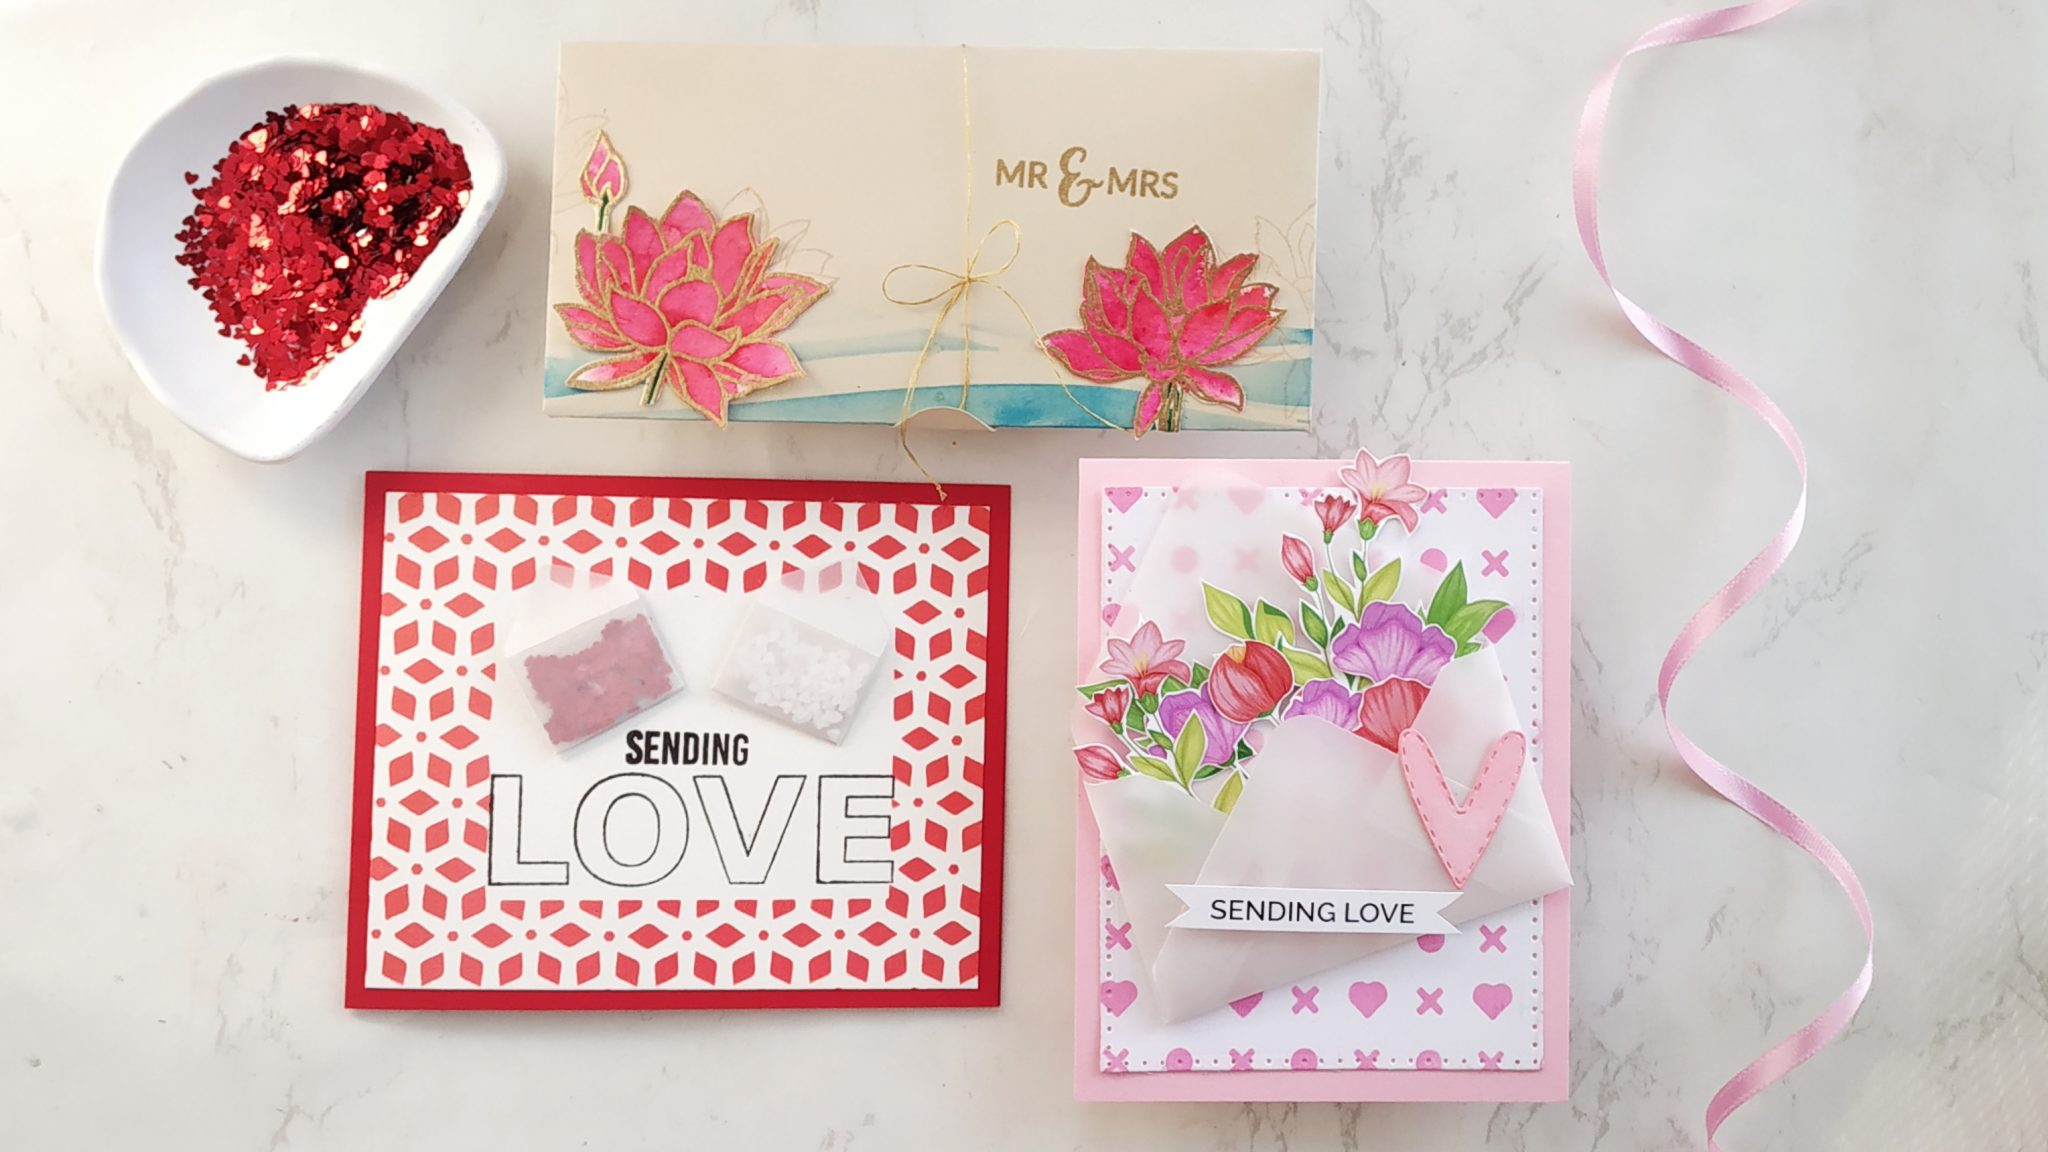 DIY envelopes - Send love in unique envelopes Video tutorial 2